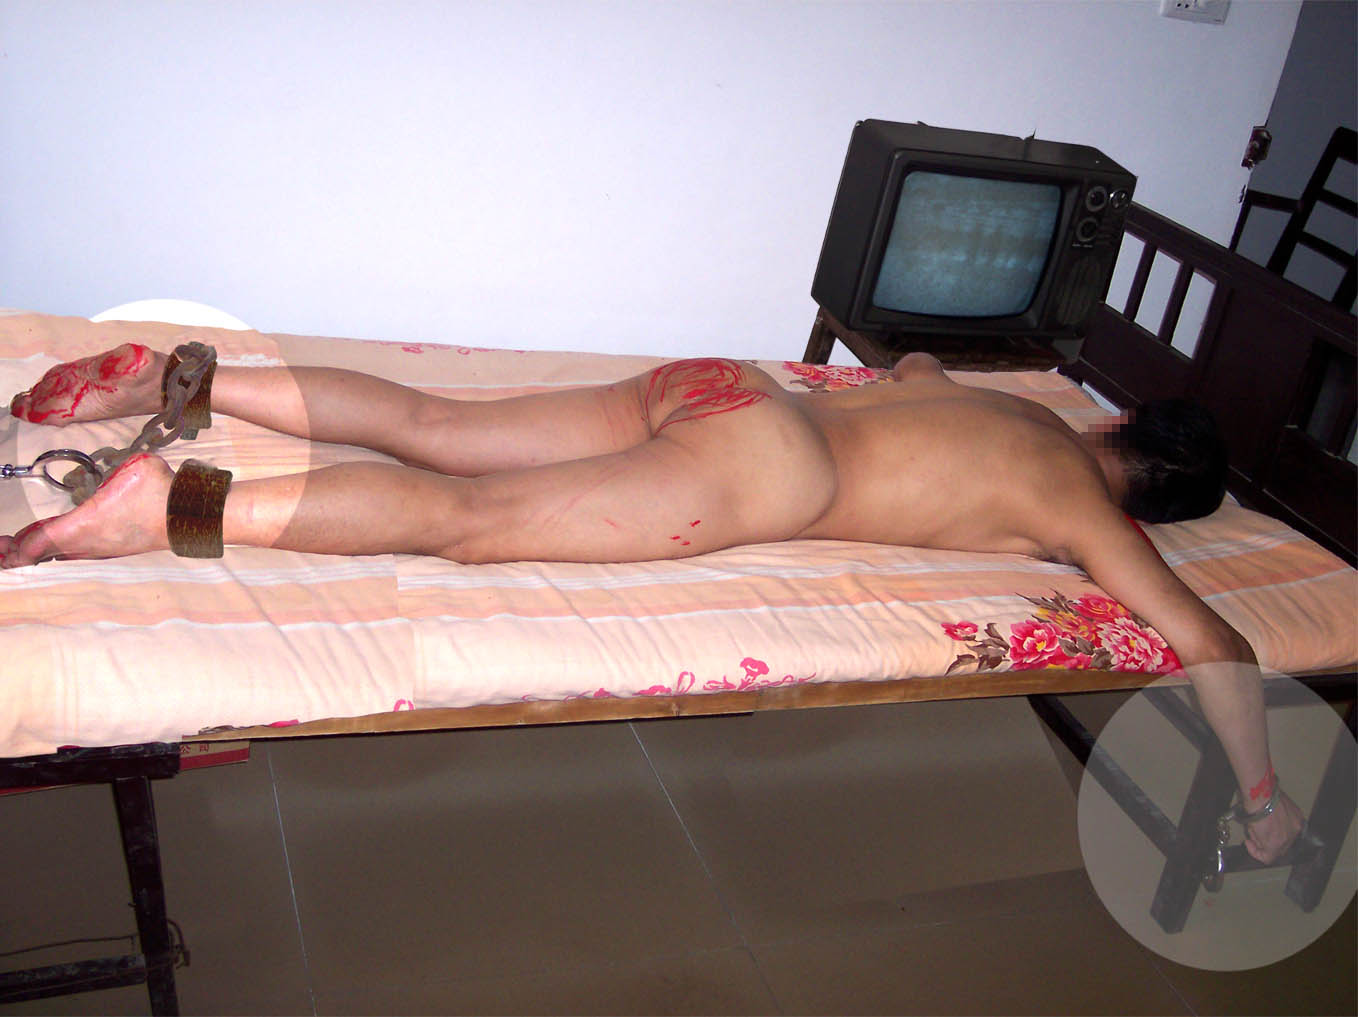 Handcuffed to bed sex well understand